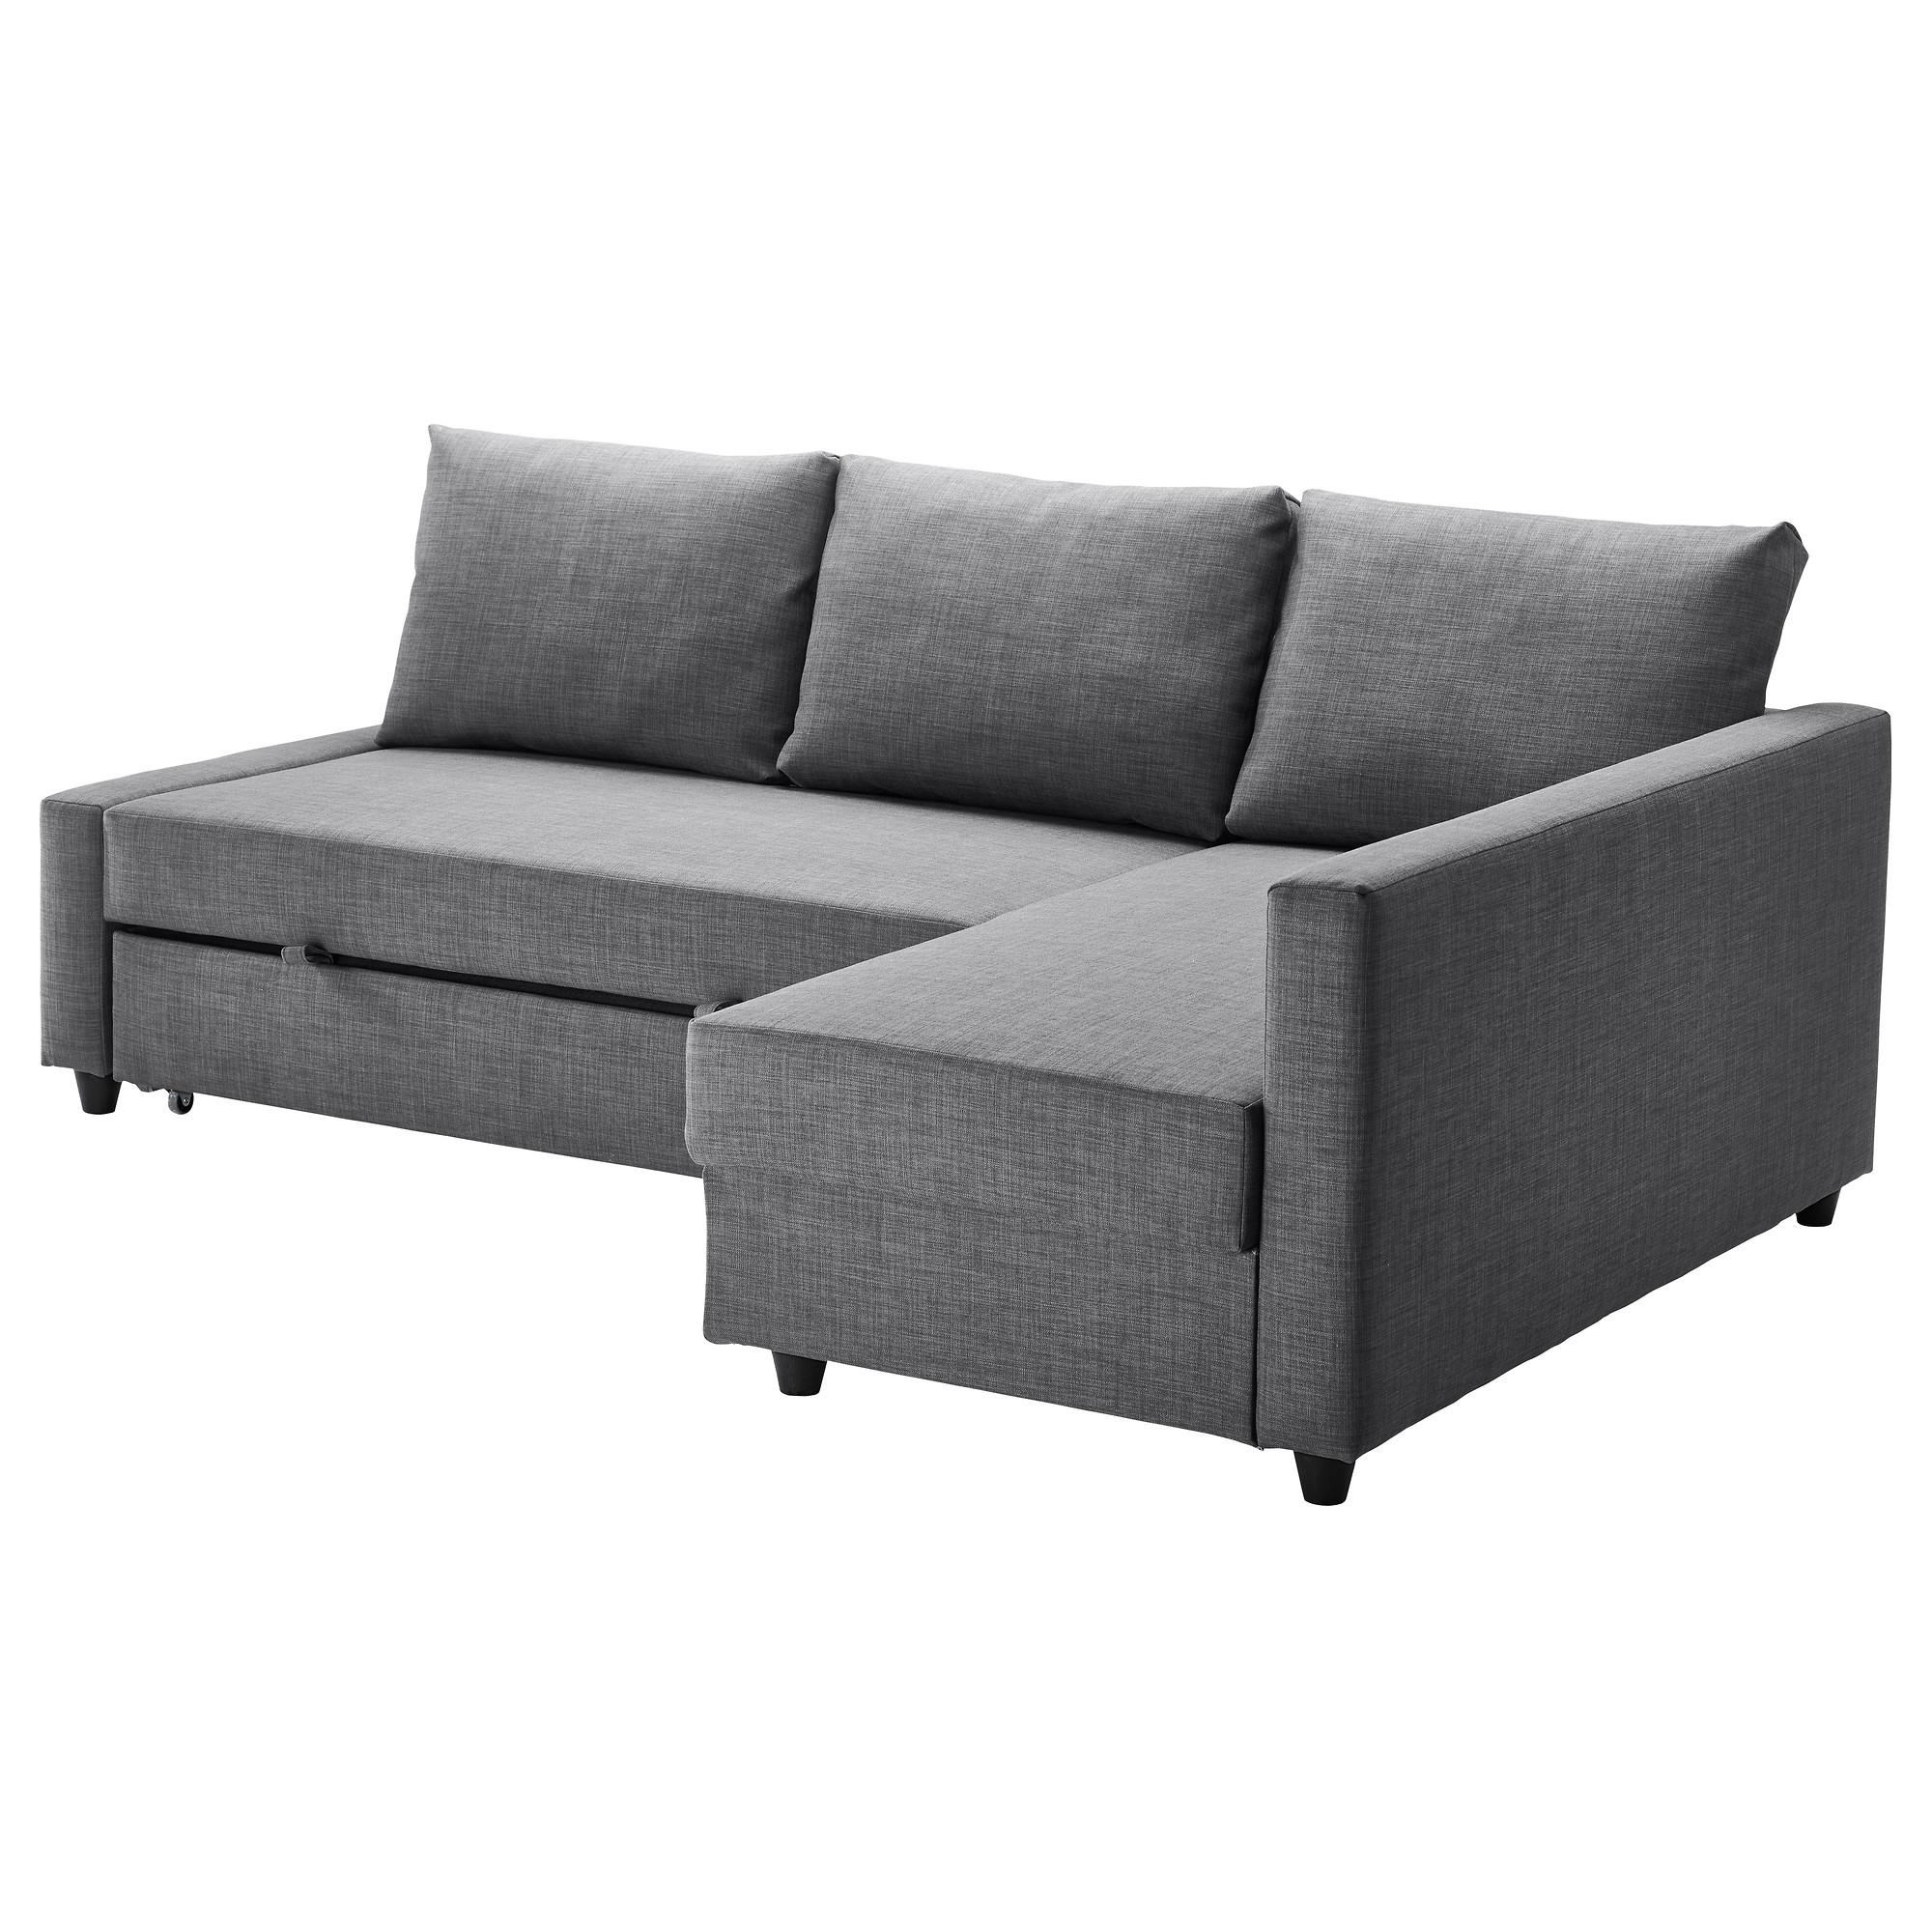 Sofa Beds & Futons – Ikea Throughout Ikea Sectional Sleeper Sofa (View 6 of 20)